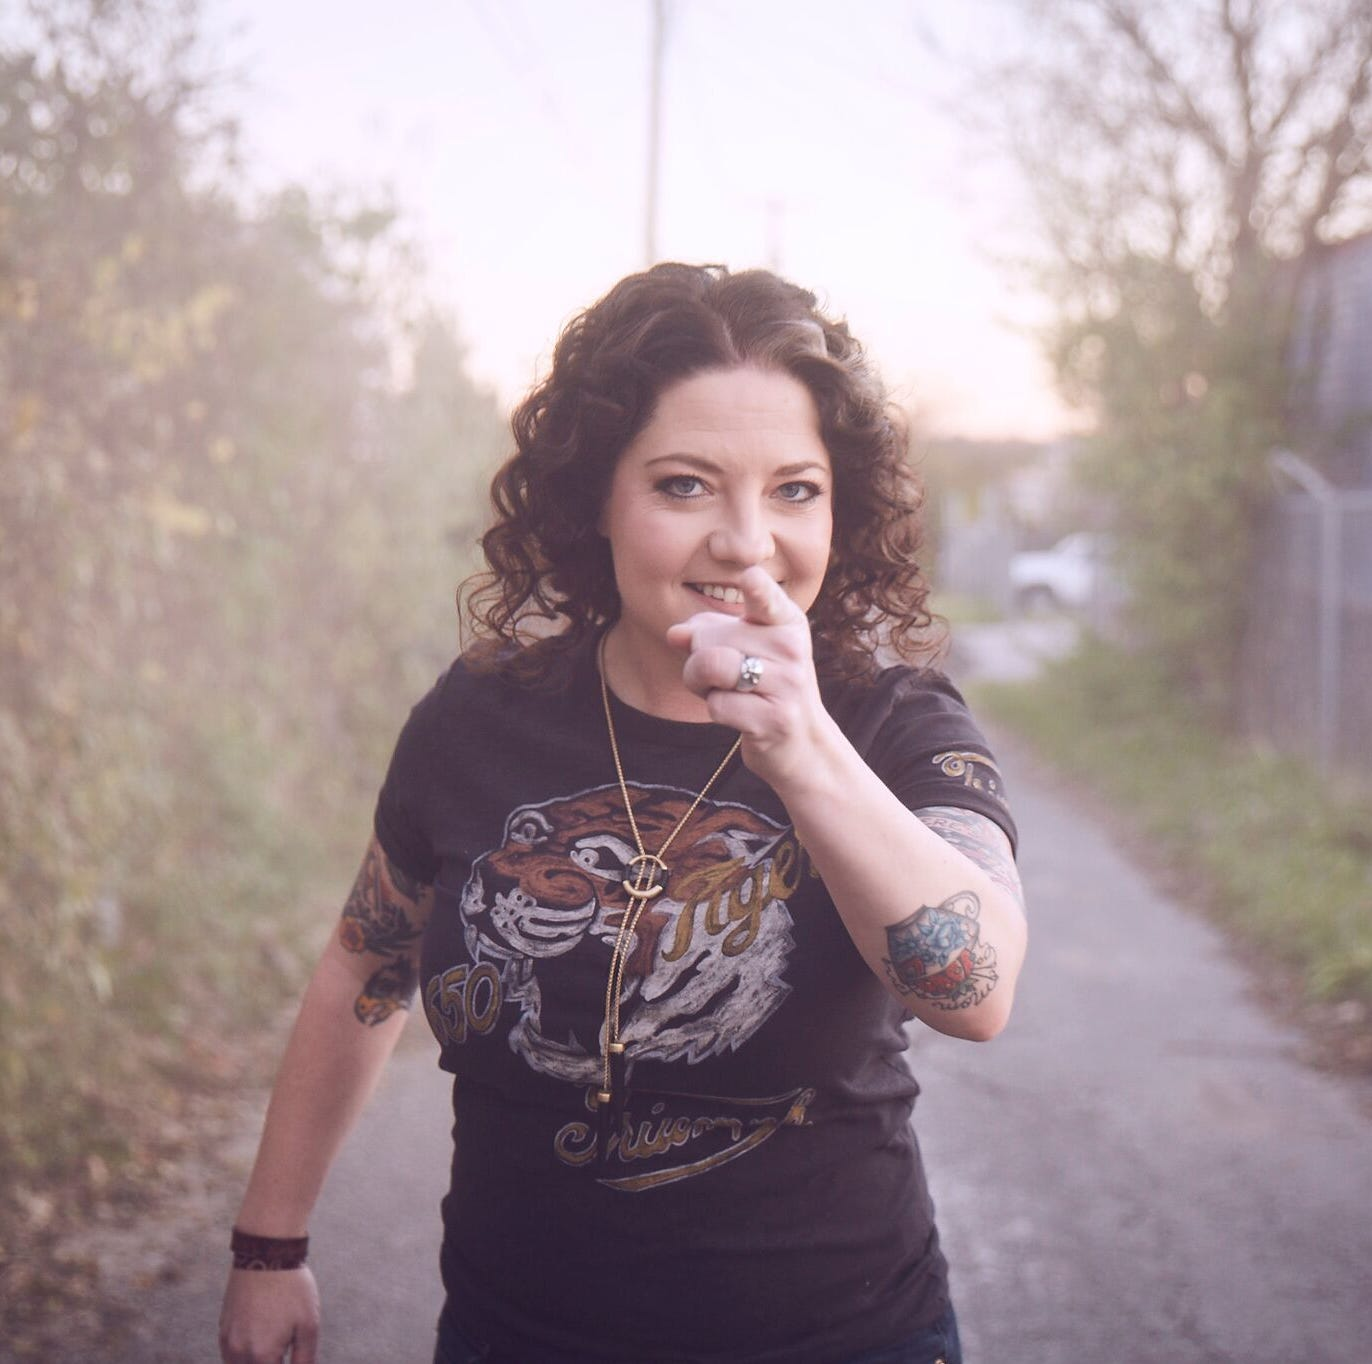 Breakout country artist Ashley McBryde to play Meyer on Girl Going Nowhere Tour